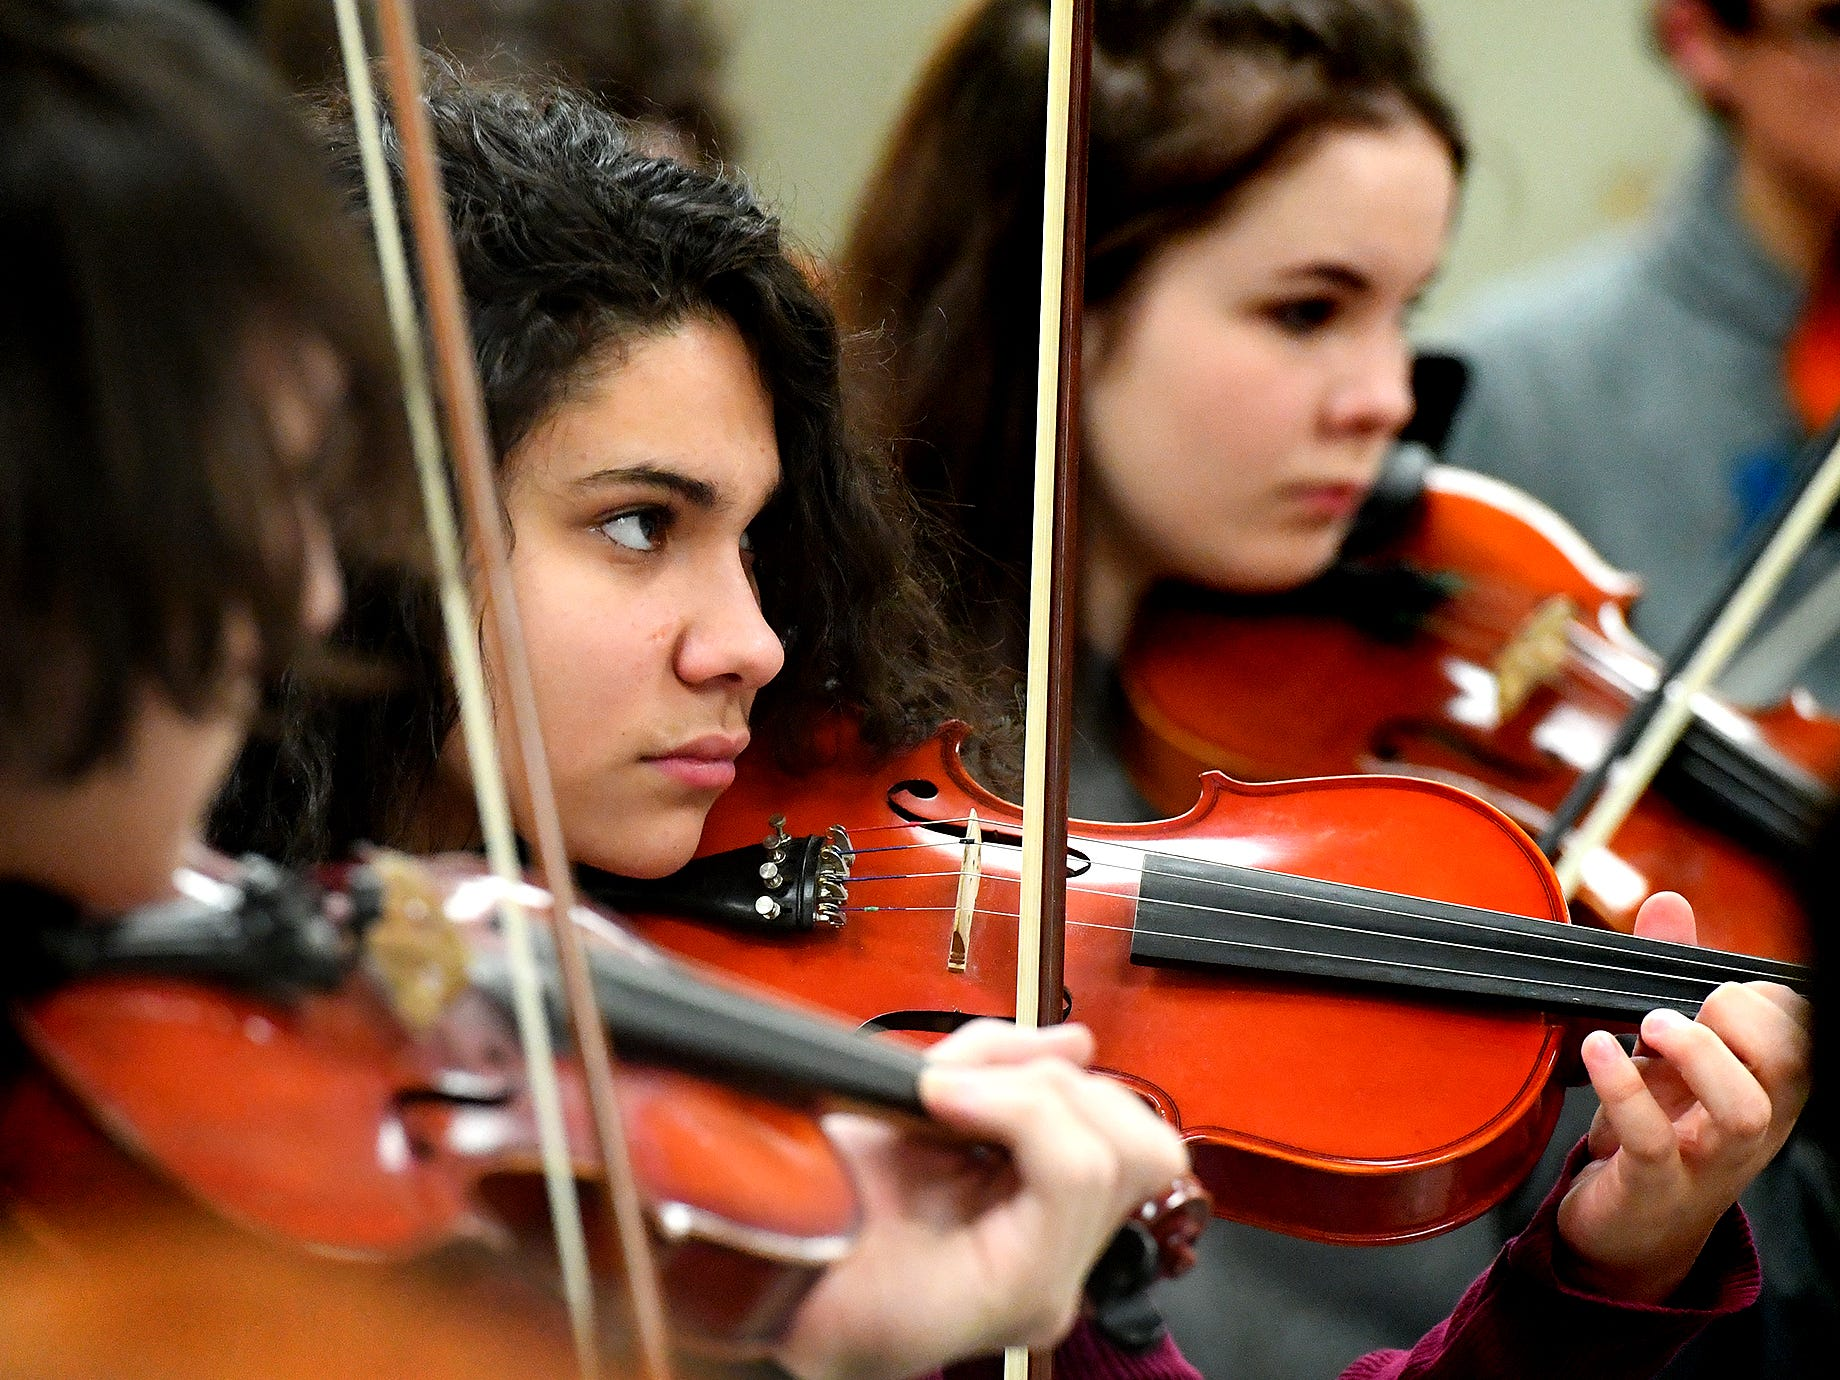 """Red Lion senior Keila Vazquez-Perez plays violin during an orchestra rehearsal at the school Friday, March 1, 2019. The orchestra is fine-tuning the piece """"Obsidian Rainbow"""" which was written by Red Lion graduate and New York composer Derek Cooper. He is premiering the piece via the Red Lion Area High School string orchestra on Wednesday, March 6. Cooper will be at the school working with the orchestra beforehand. Bill Kalina photo"""